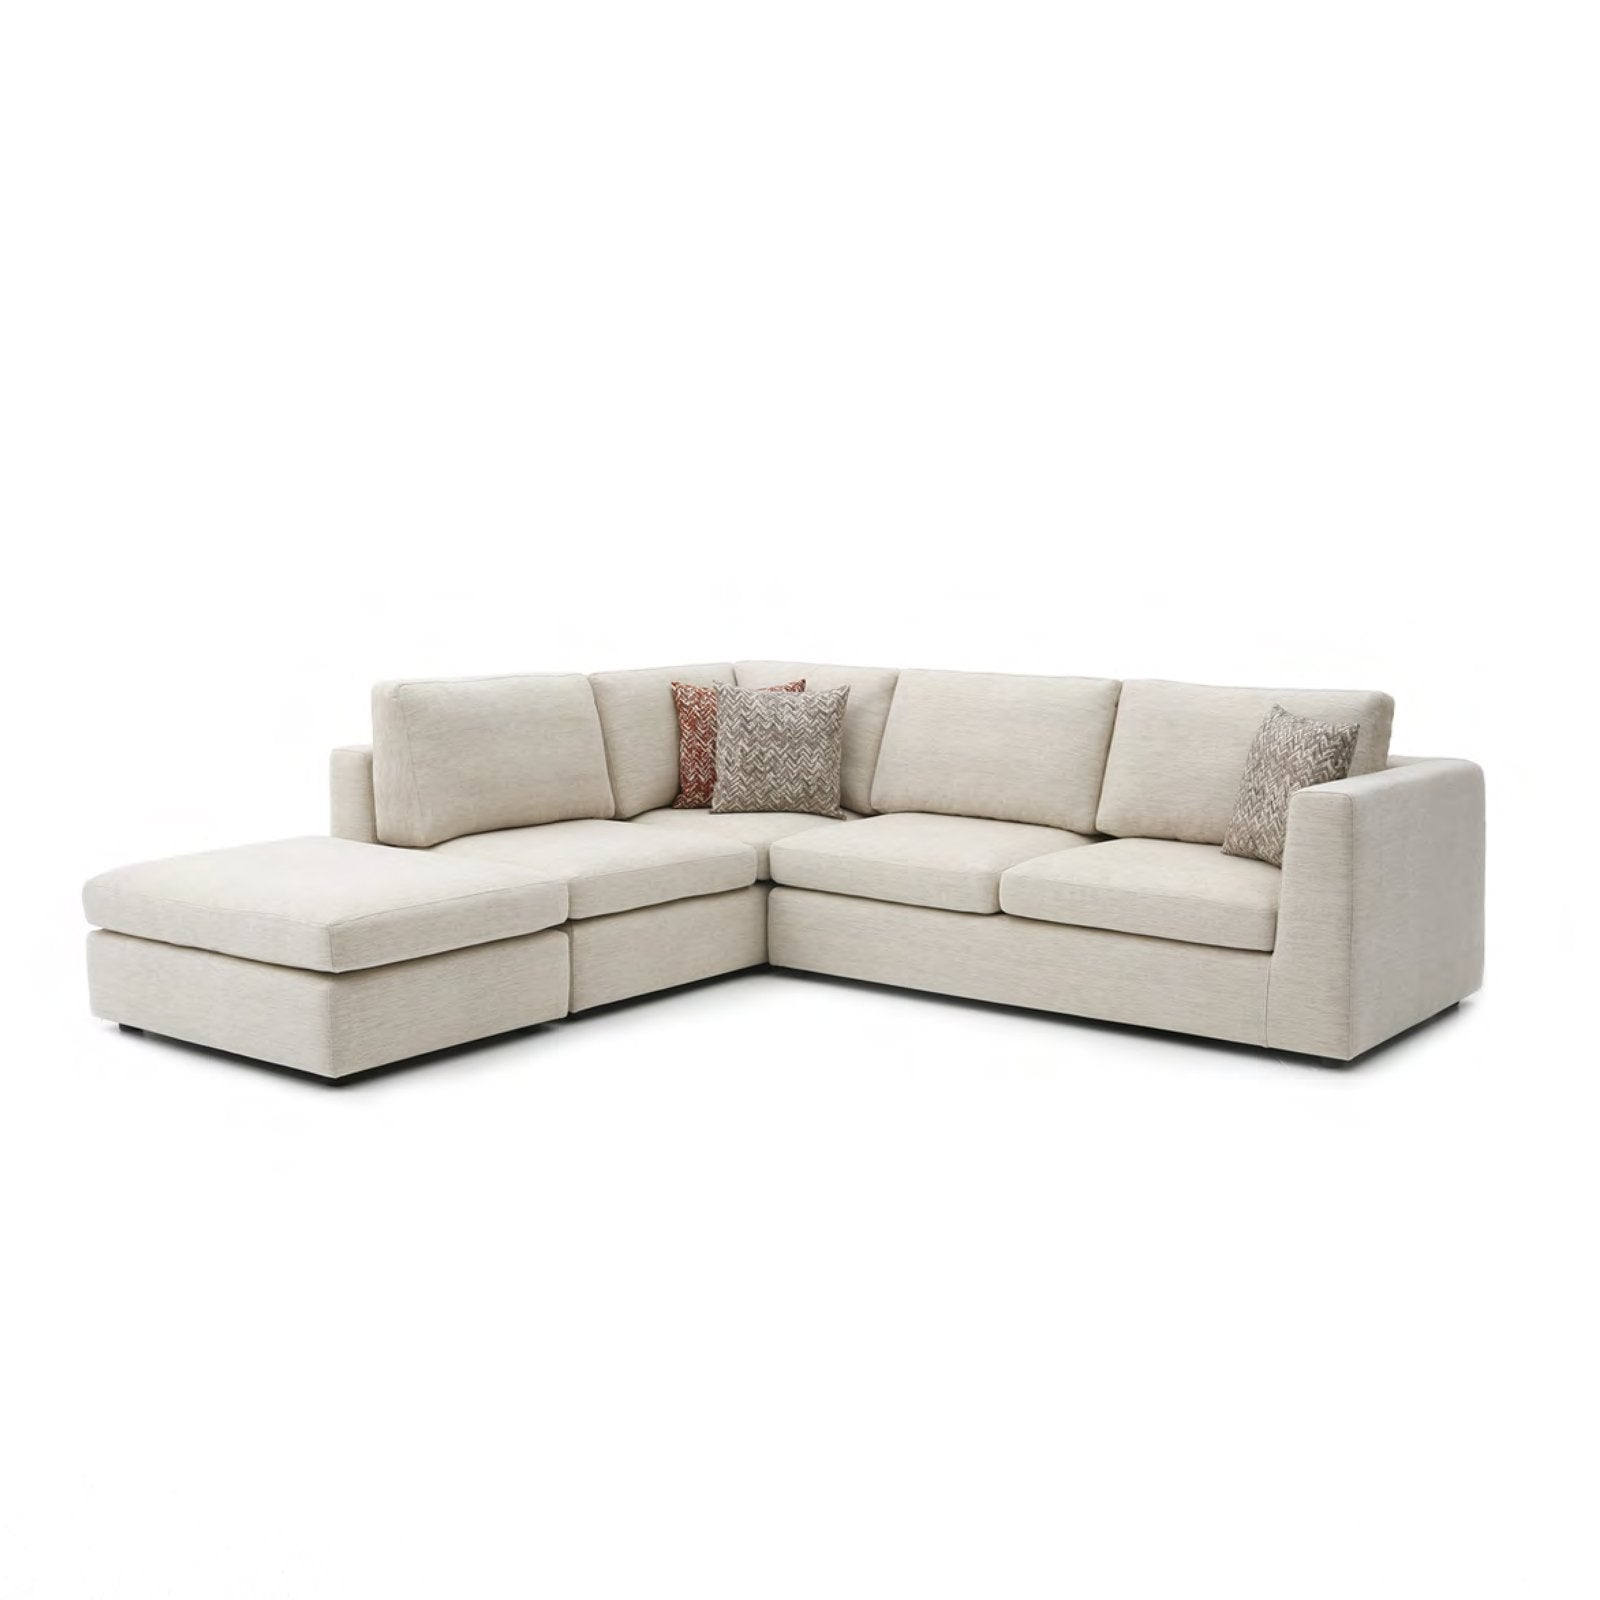 Swell Emily Sectional Sofa Ibusinesslaw Wood Chair Design Ideas Ibusinesslaworg